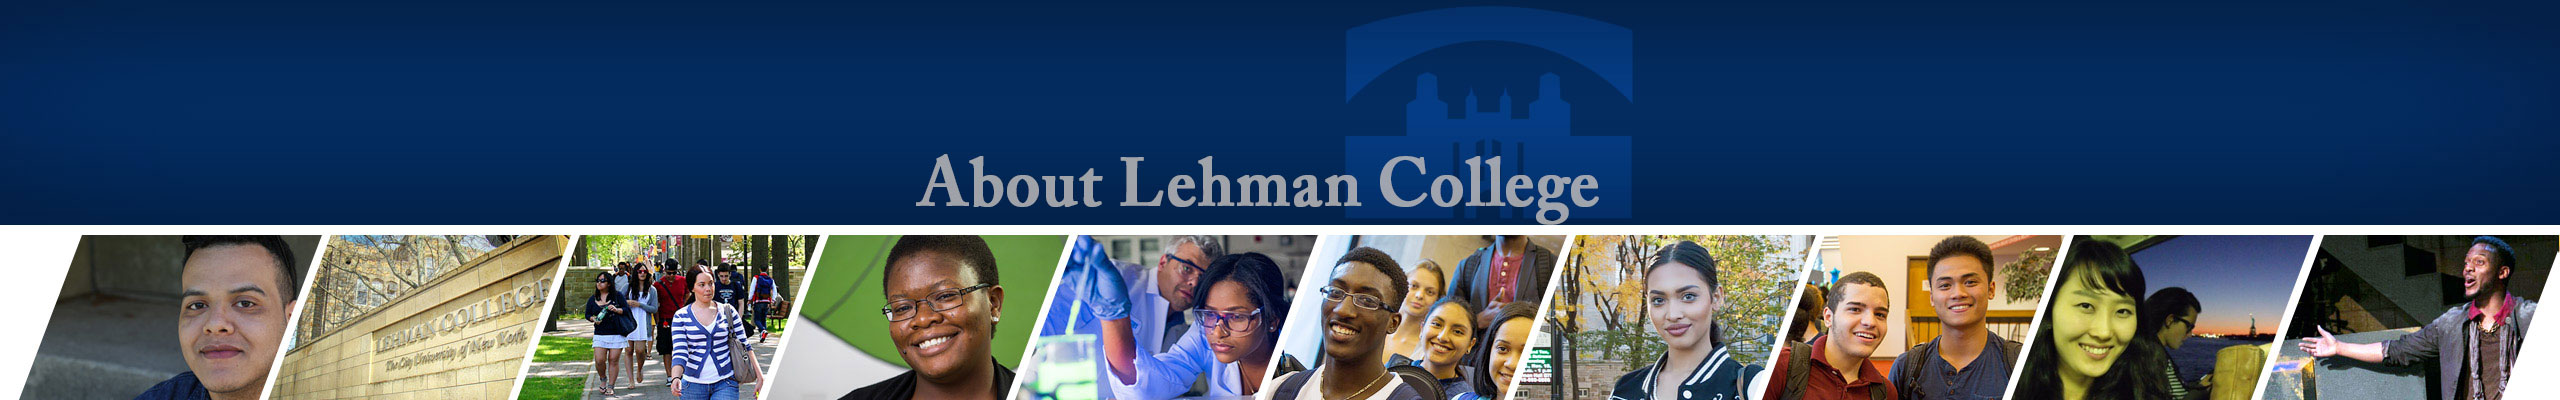 Lehman College Office Hours and Locations - Administrative Office Hours